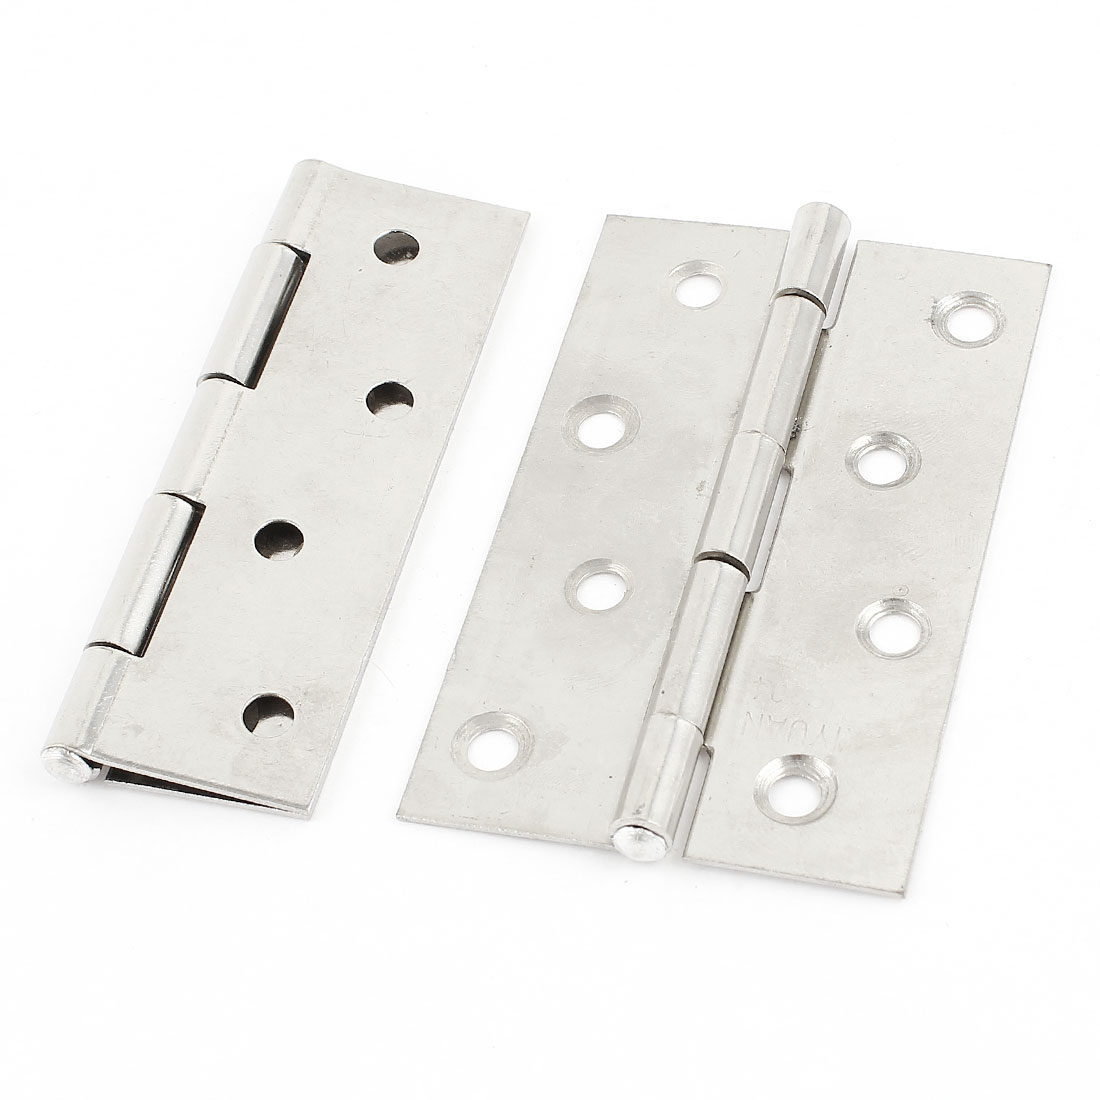 2 Pcs Cupboard Cabinet 6mm Dia Mounted Stainless Steel Folding Door Hinge